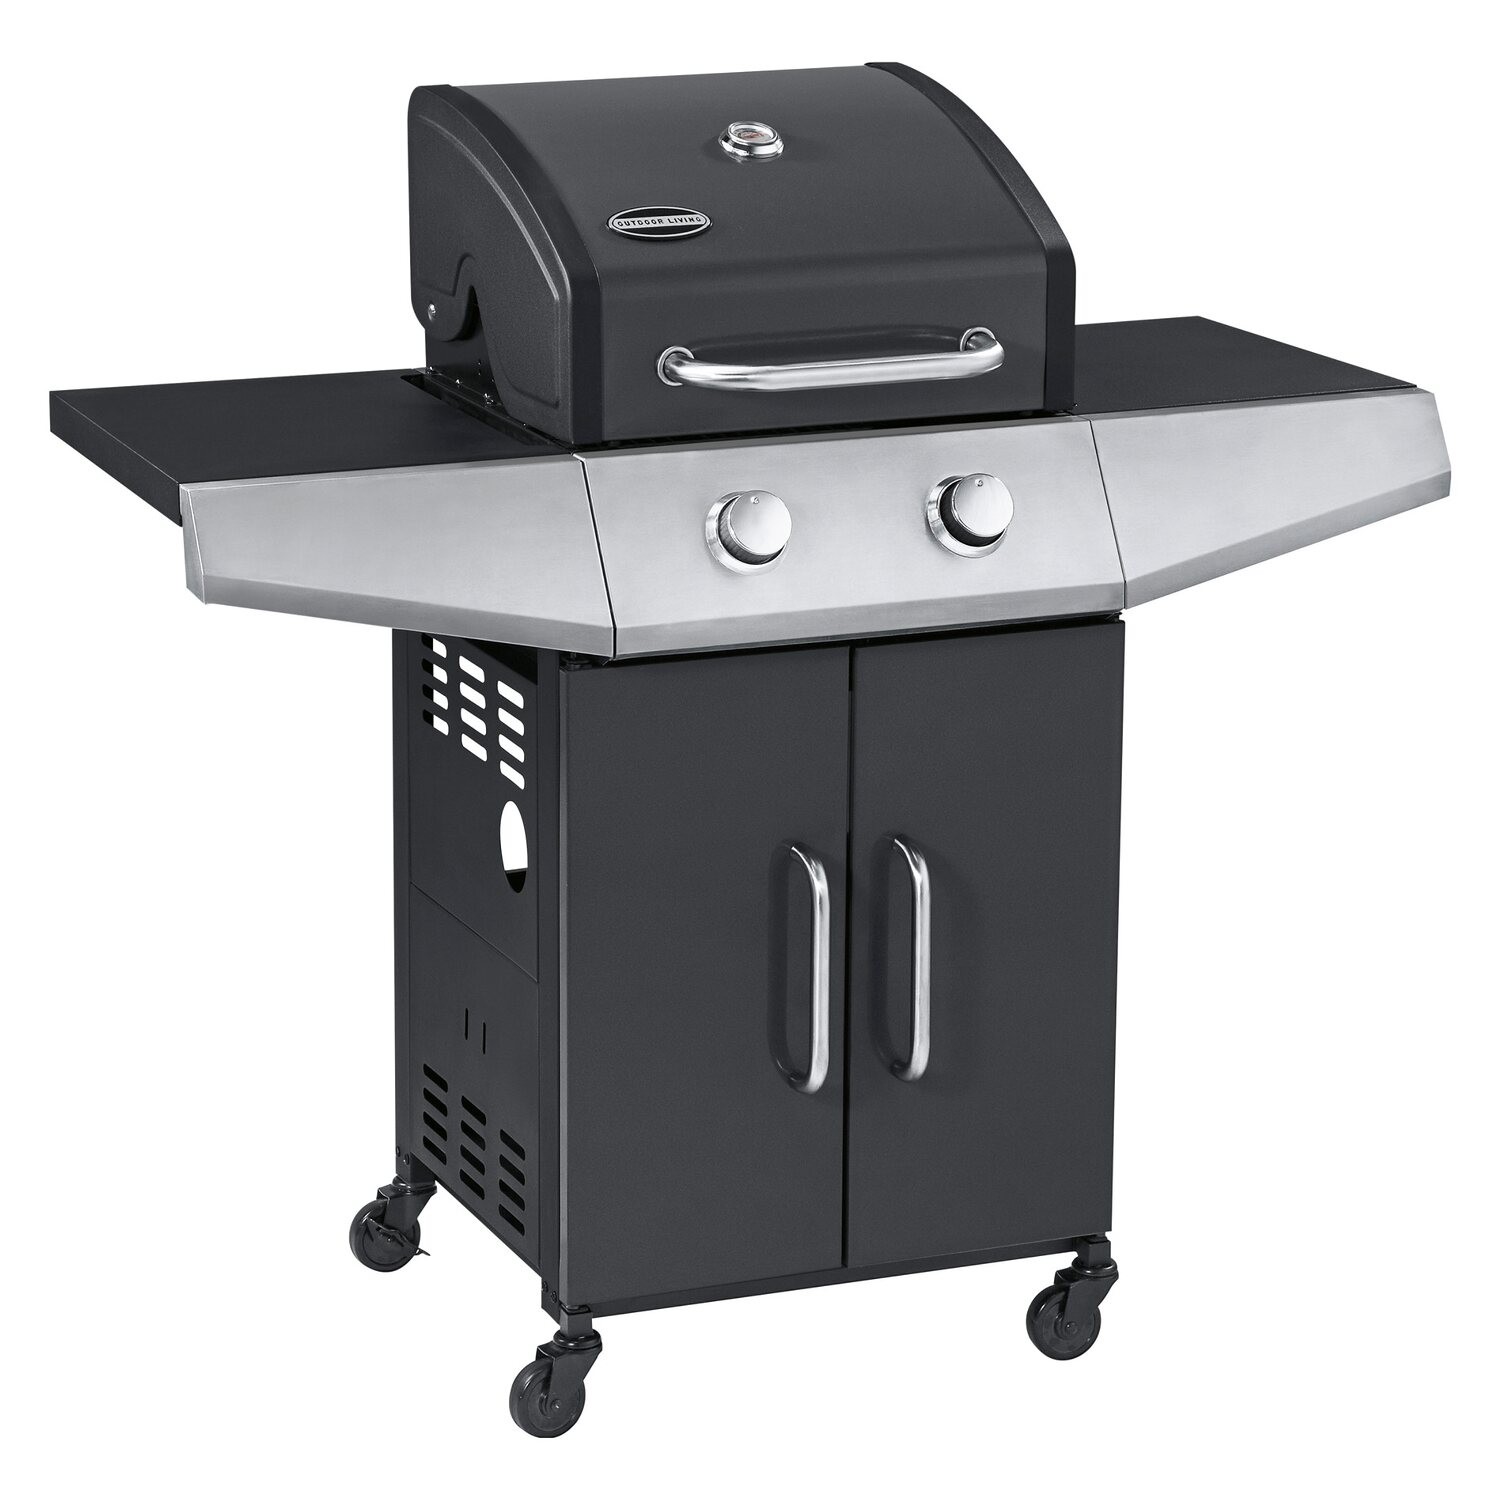 enders bbq gasgrill baltimore gas grill 81496 2 guss. Black Bedroom Furniture Sets. Home Design Ideas